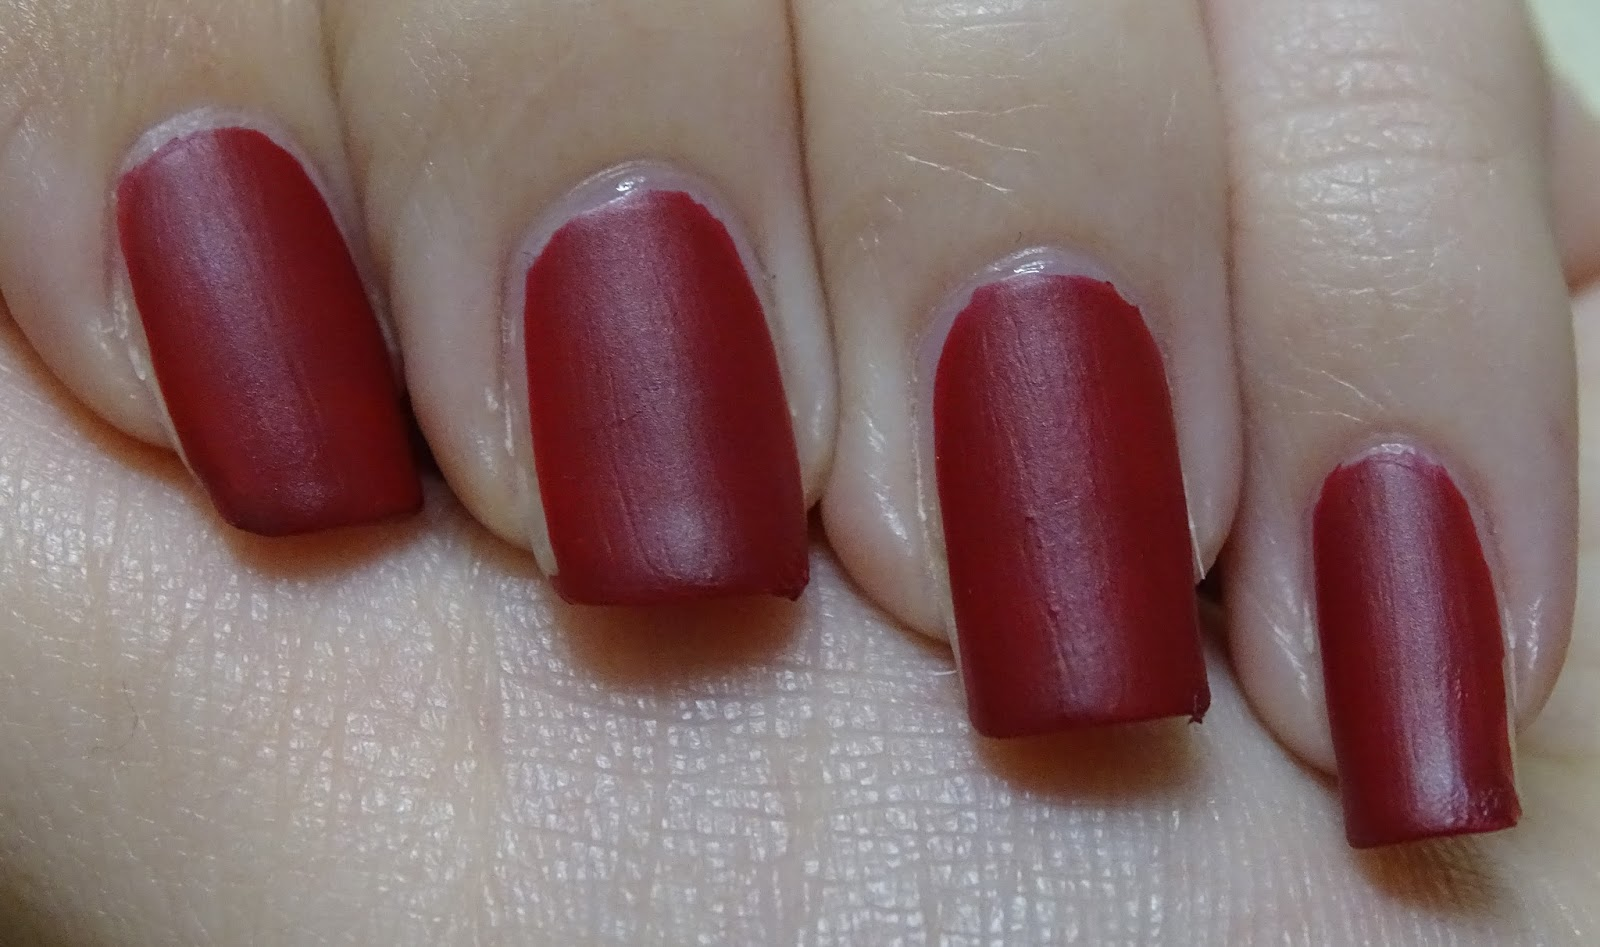 Das Mini bloggt: [Nagellack] Catrice lala Berlin LE C05 Ruling Red